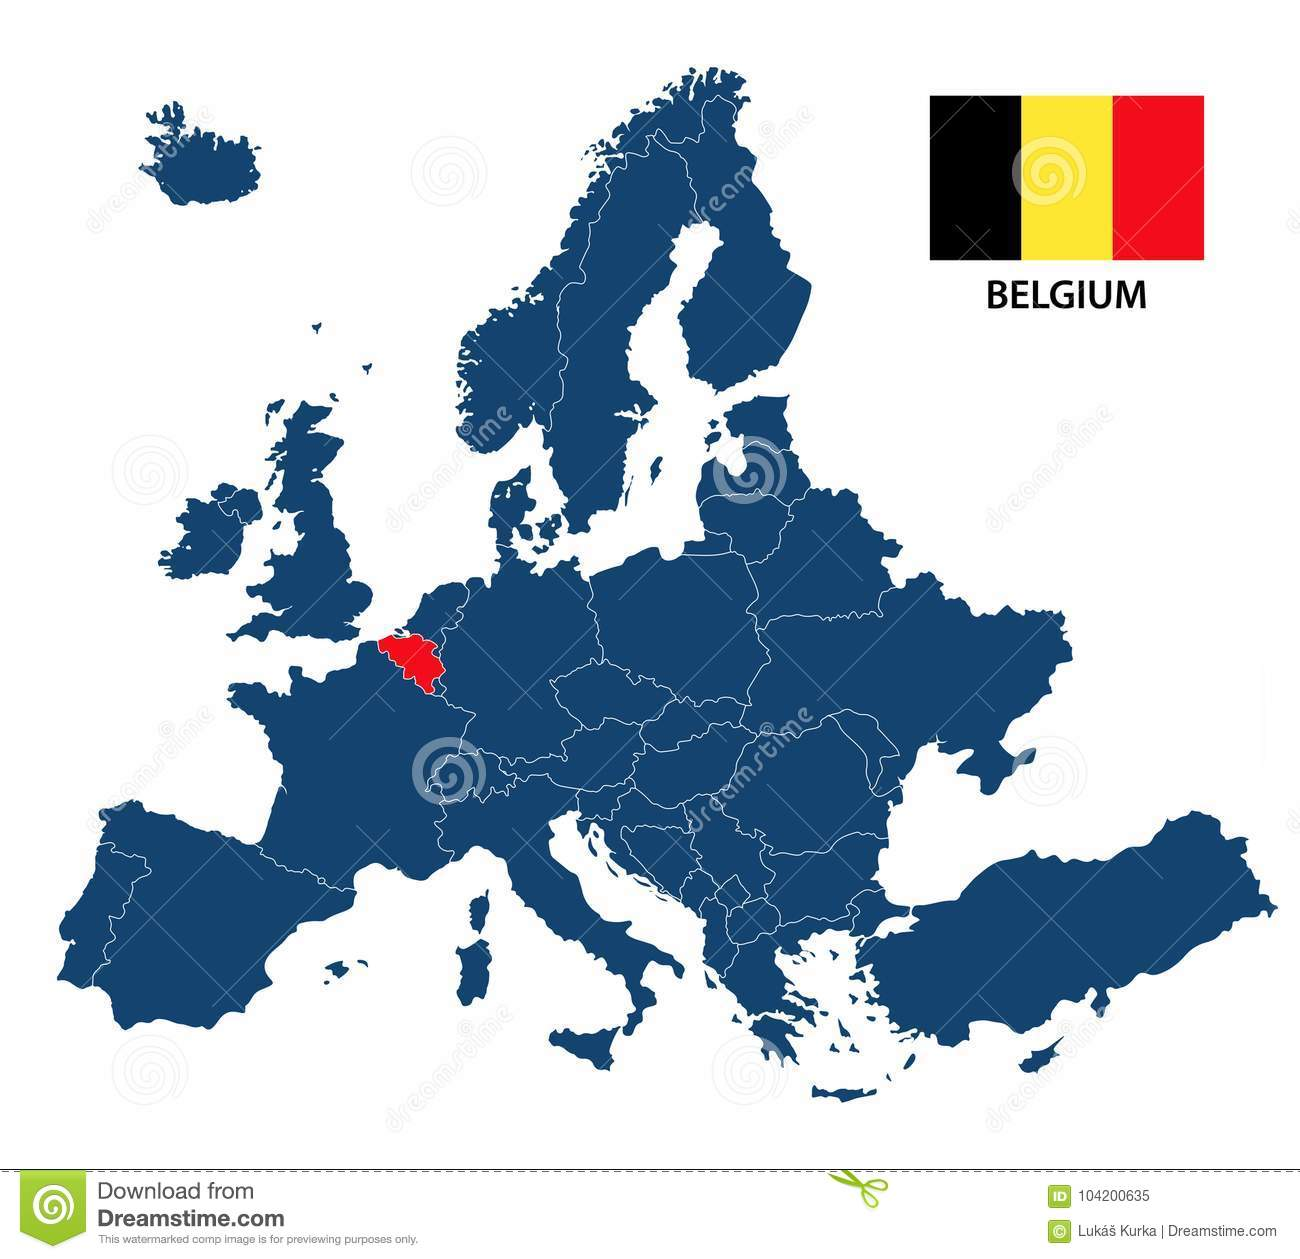 Vector illustration of a map of europe with highlighted belgium download vector illustration of a map of europe with highlighted belgium stock vector illustration of gumiabroncs Images